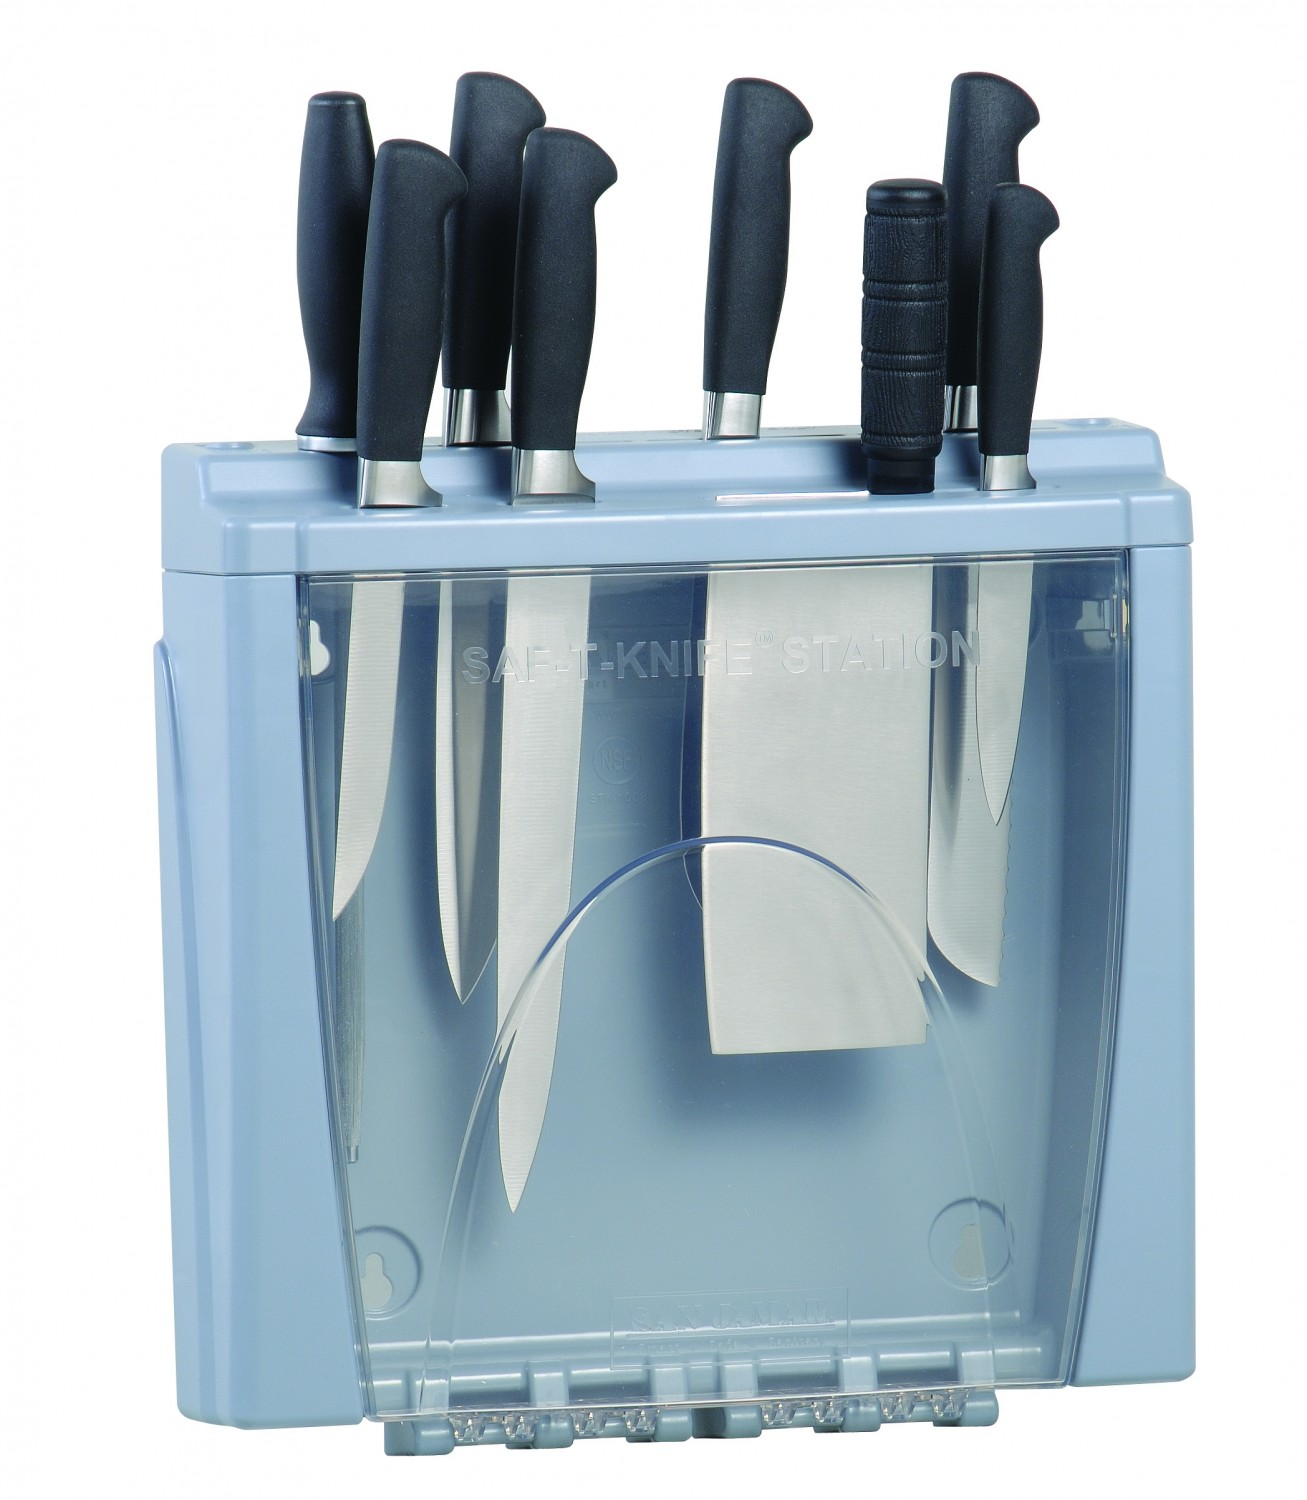 San Jamar STK1008 Saf-T-Knife Station Safe Food Preparation